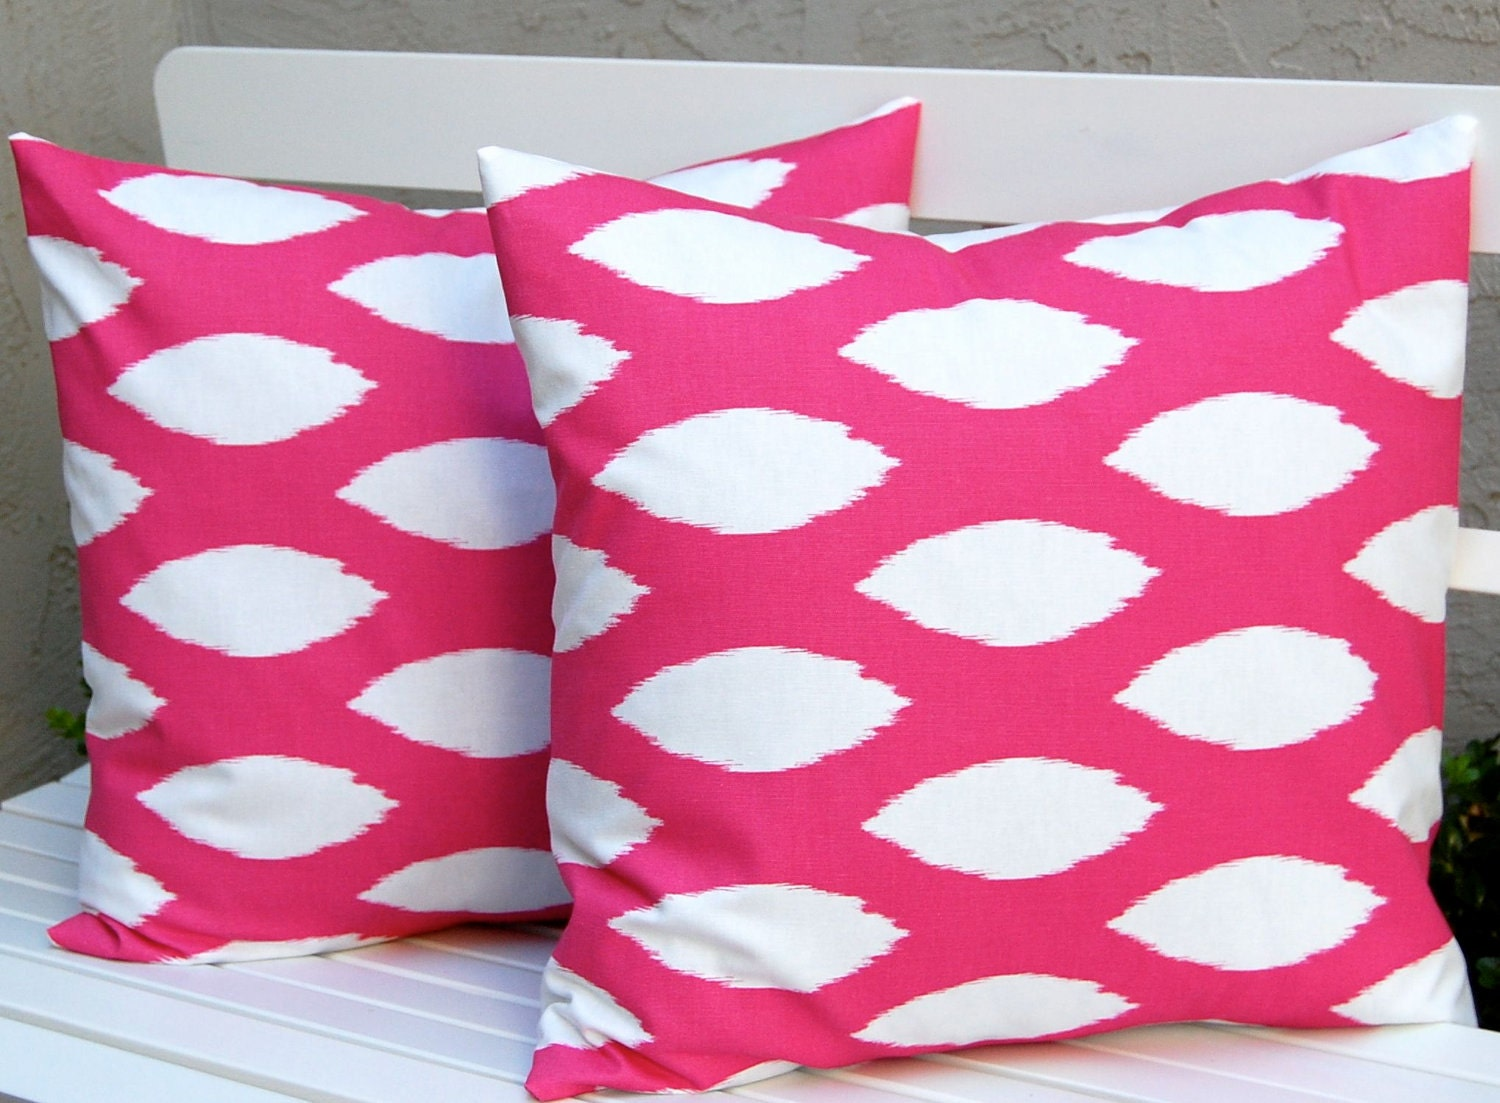 Decorative Pillow Pink : Decorative Pillows Hot Pink Pillows Ikat Pillow Covers Throw